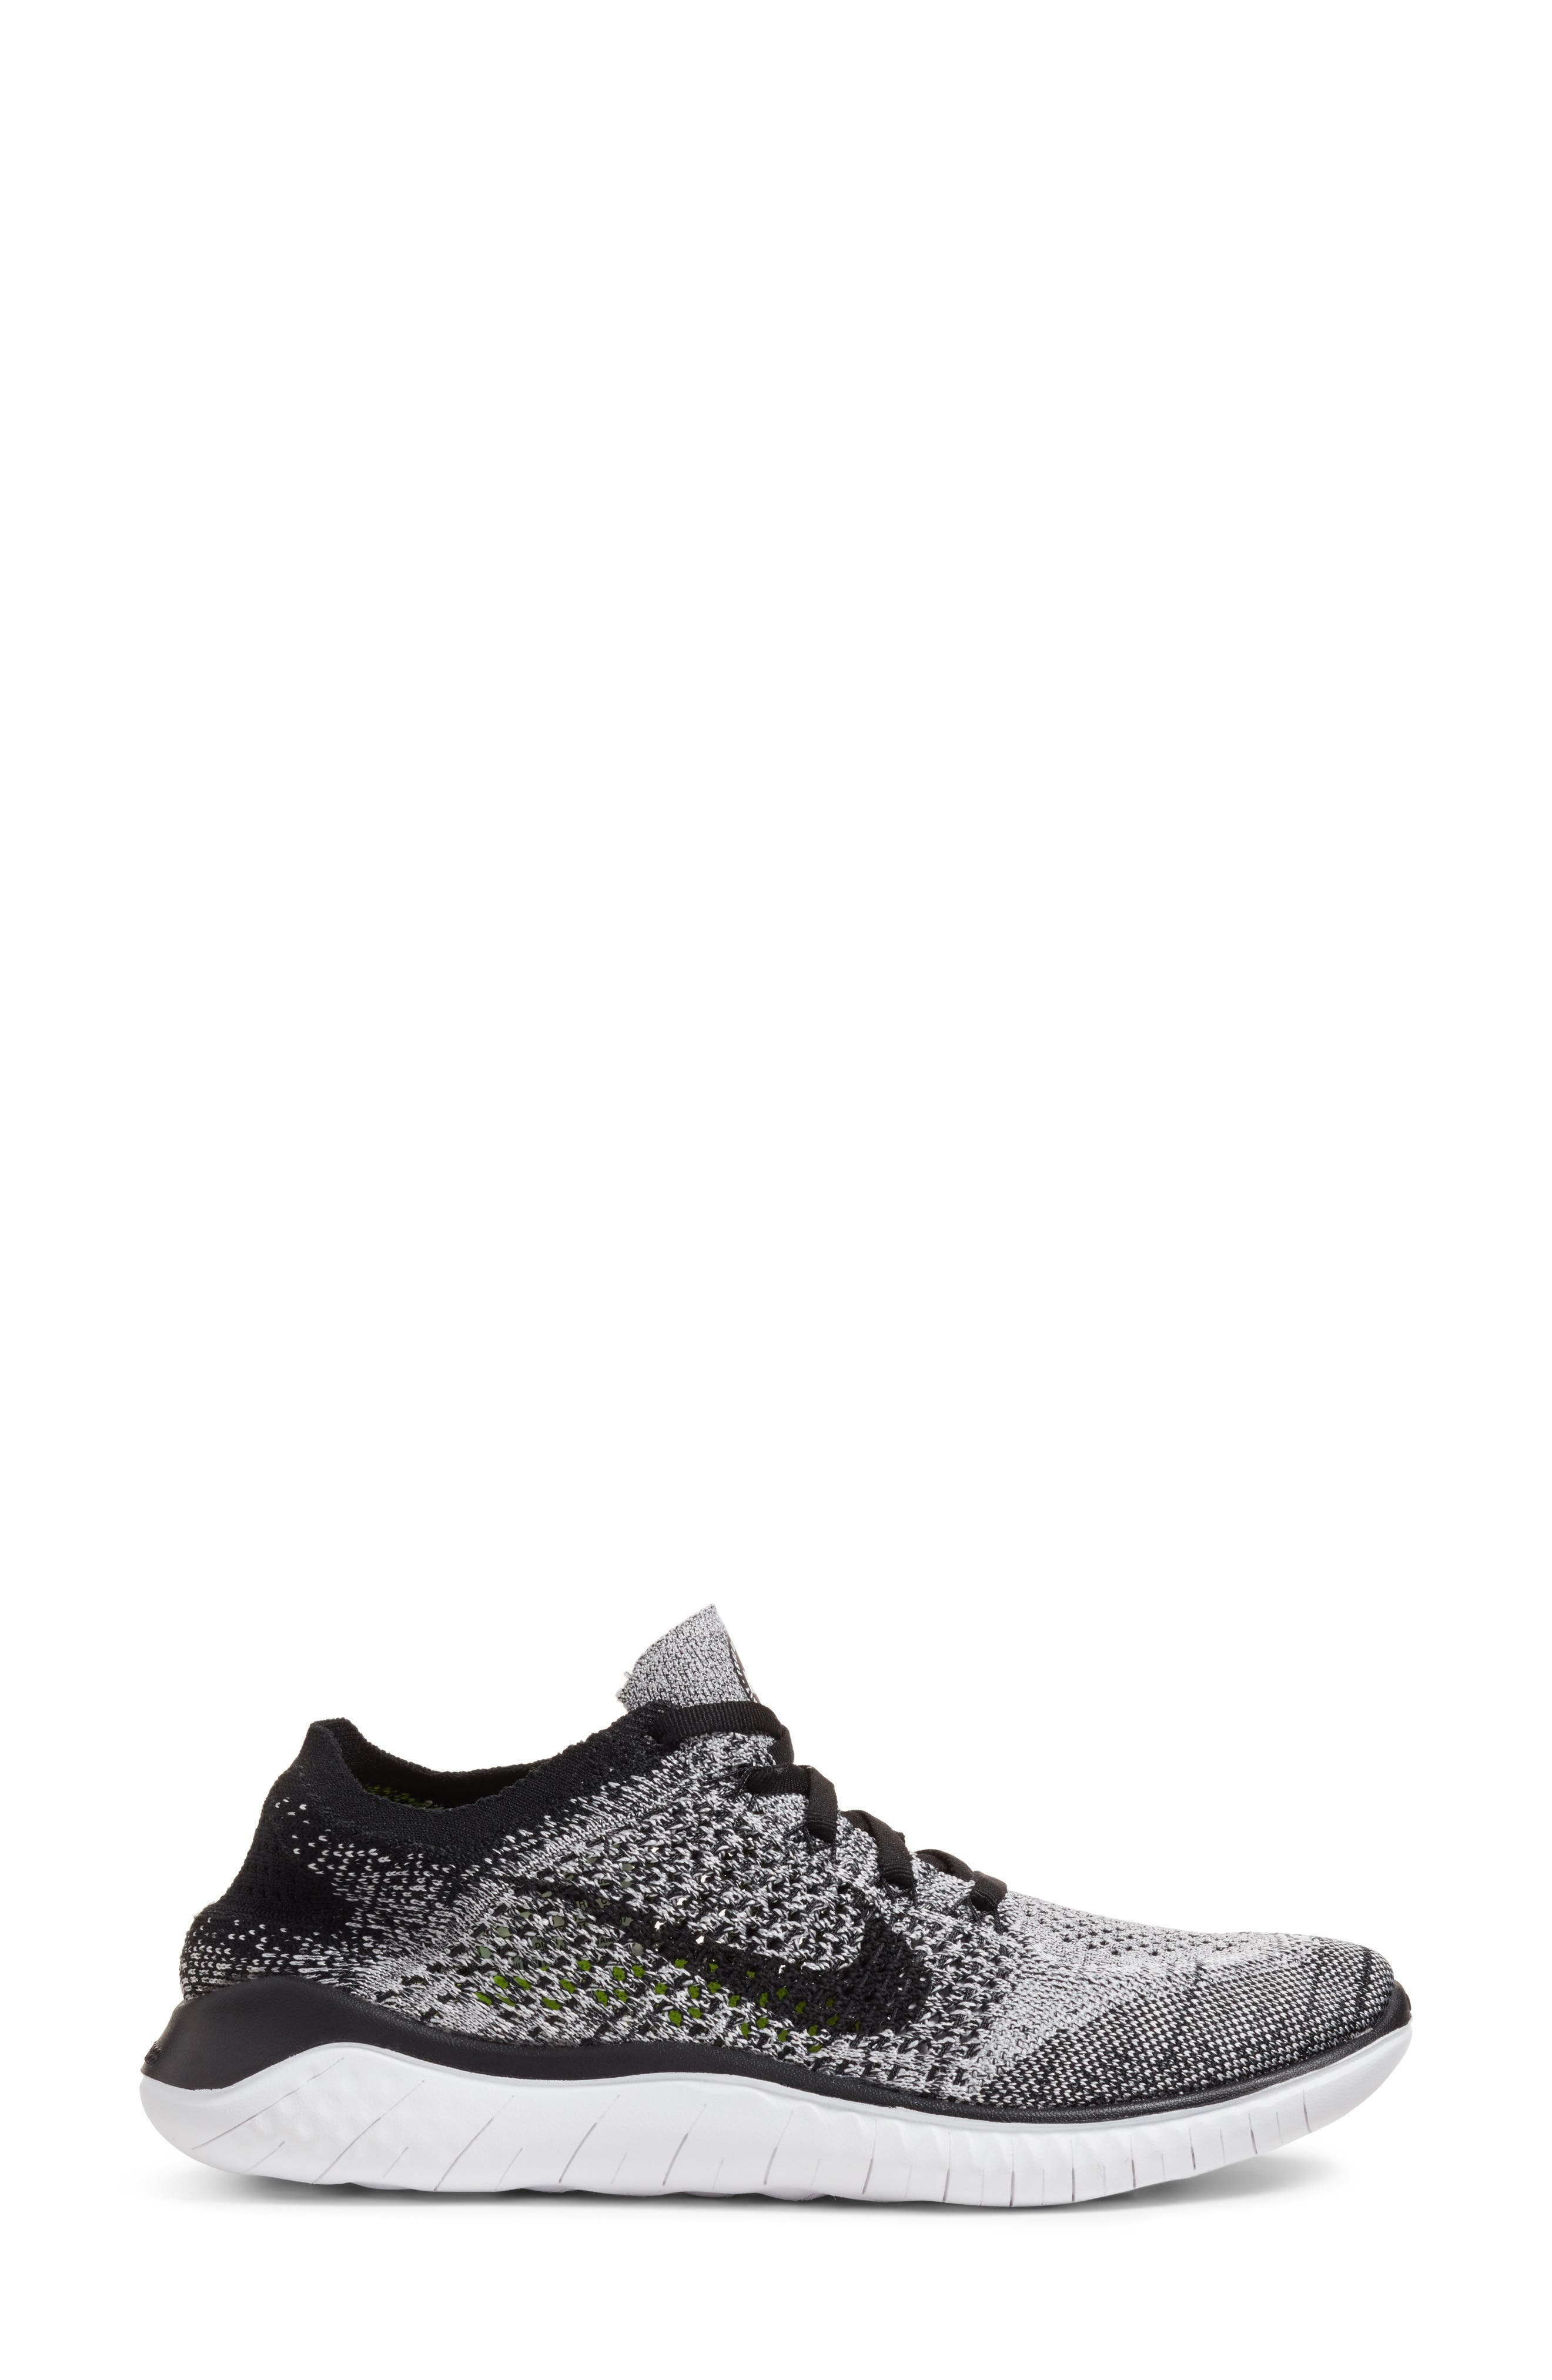 Free RN Flyknit 2018 Running Shoe,                             Alternate thumbnail 25, color,